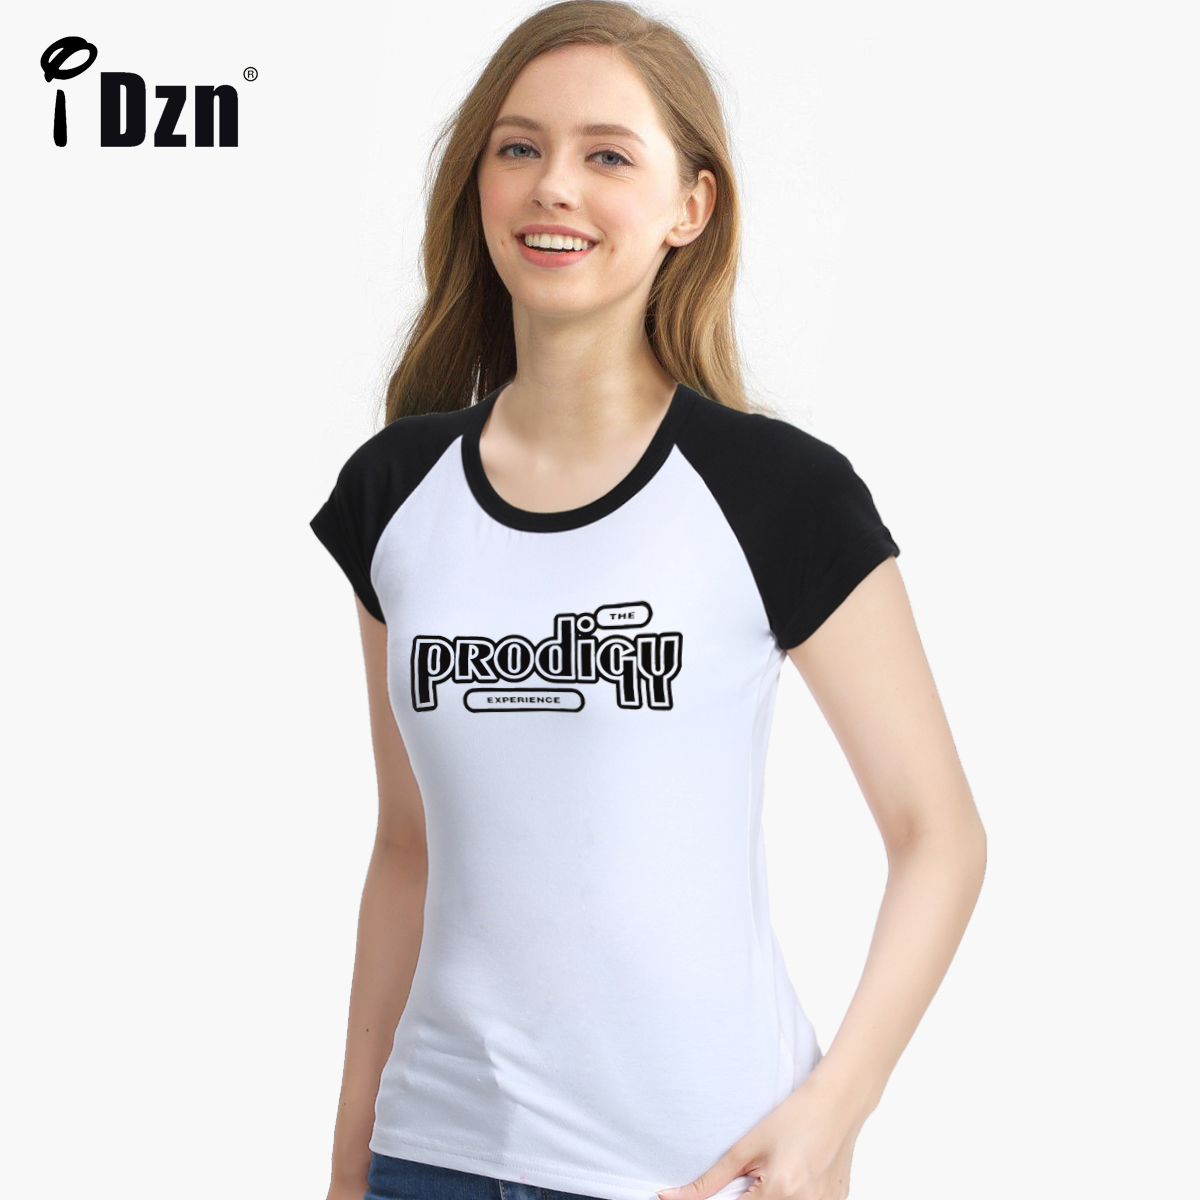 Women T-shirt Bring me The horizon Of Mice and Men Choose your weapon The prodigy experience Electronic Music Band Printed Tees